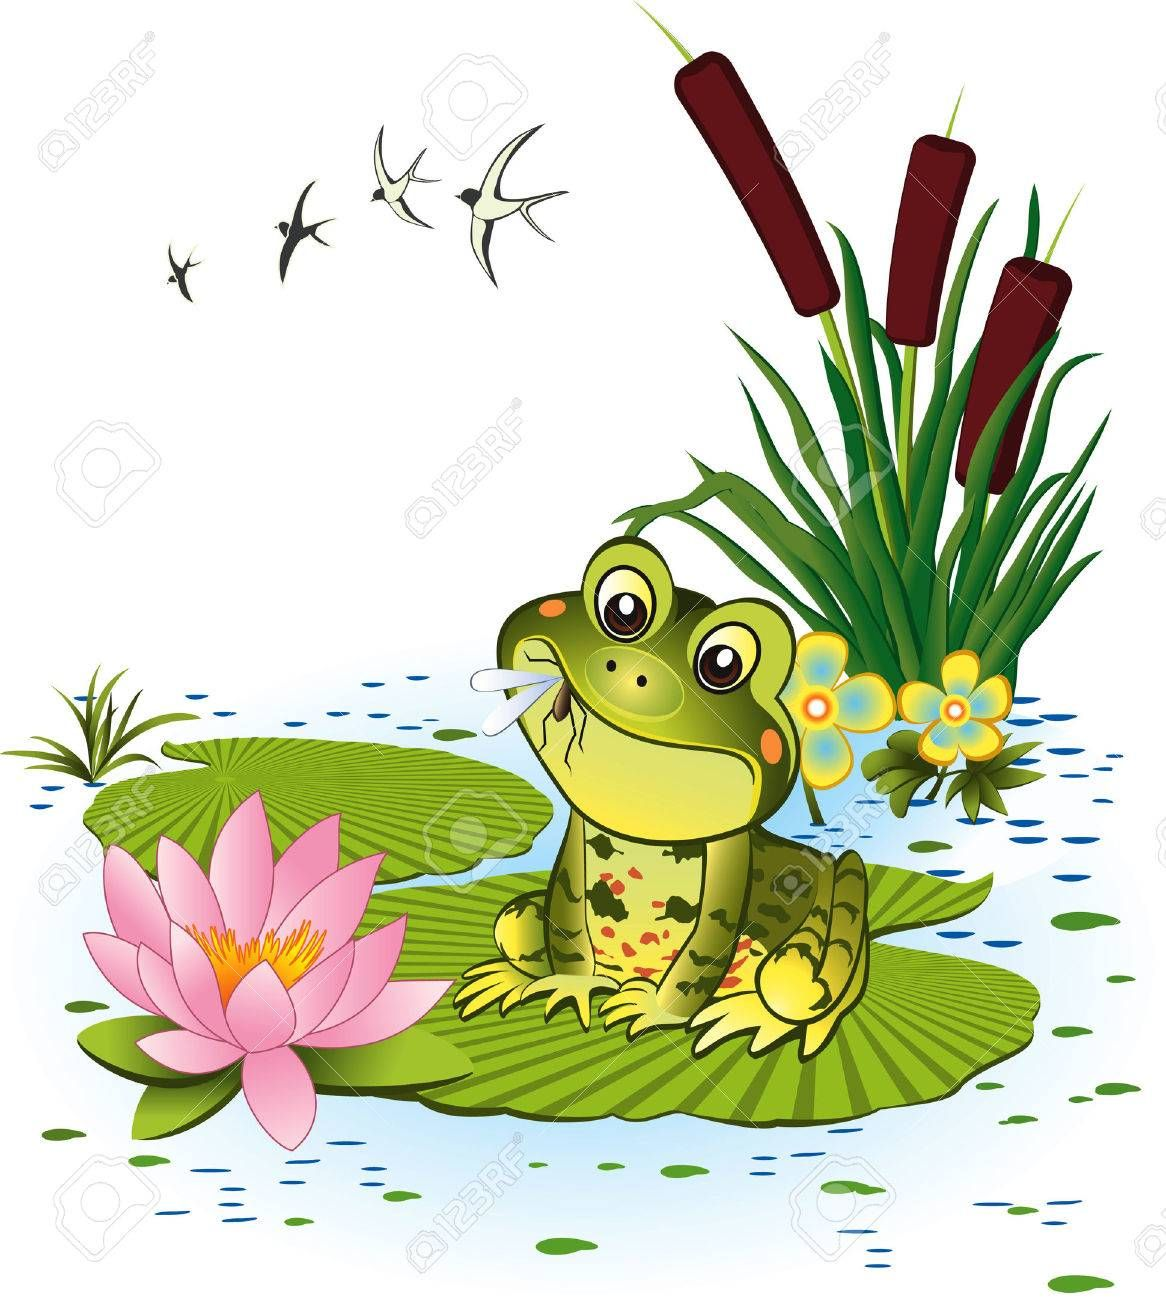 Cute Frog With Mosquito Royalty Free Cliparts Vectors And Stock Illustration Image 8642200 Frog Illustration Frog Art Frog Drawing